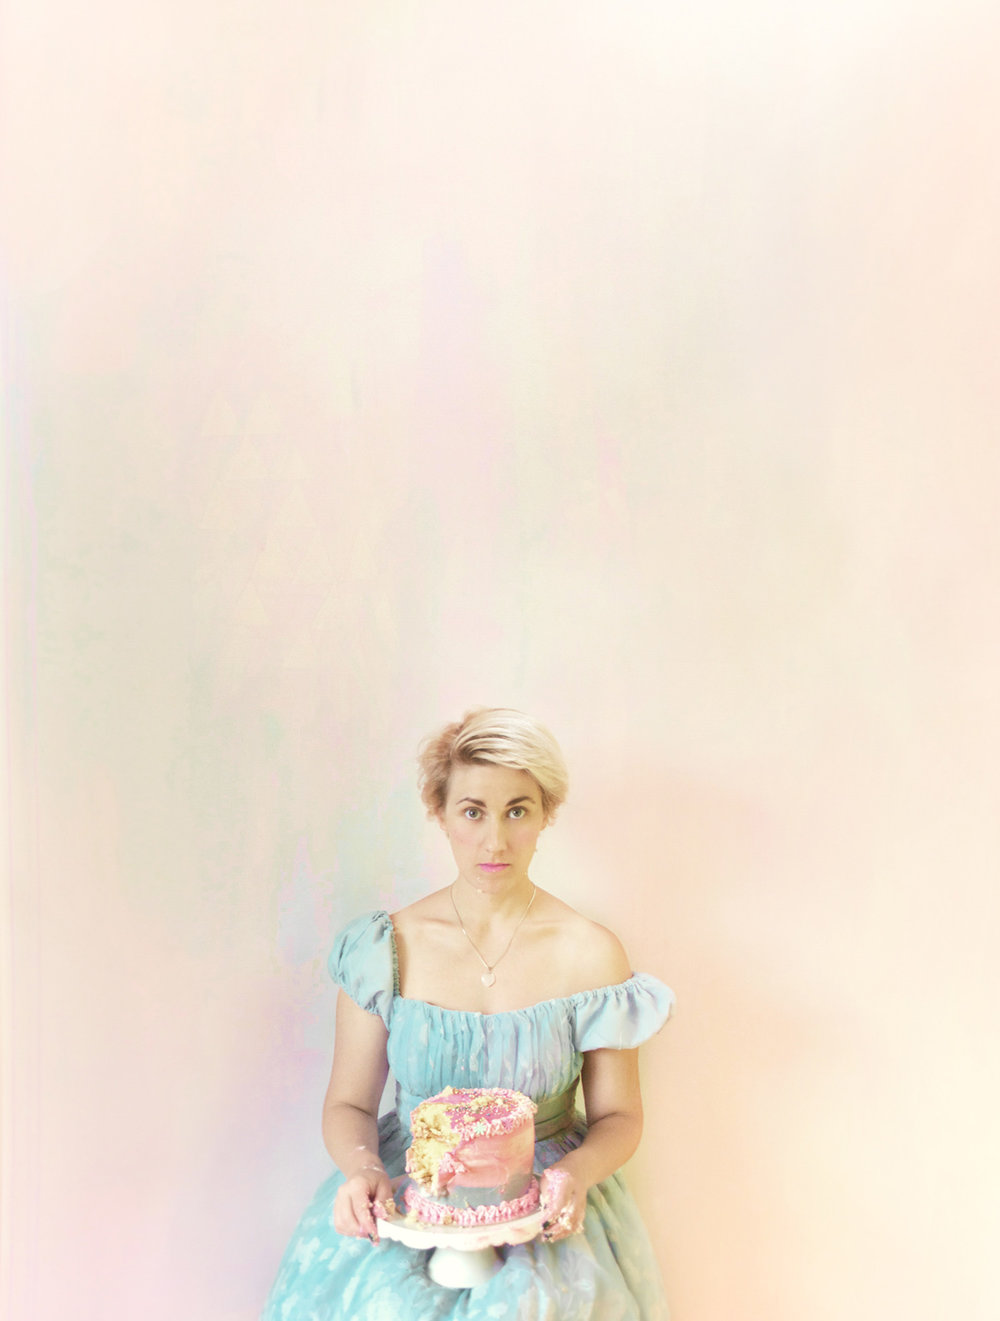 Alice in Wonderland party theme styled interior featuring pastel abstract mural and portrait of Alice holding a rainbow layer cake with sprinkles, cake has a handful missing, model wears off the shoulder blue princess dress and short blonde hair.